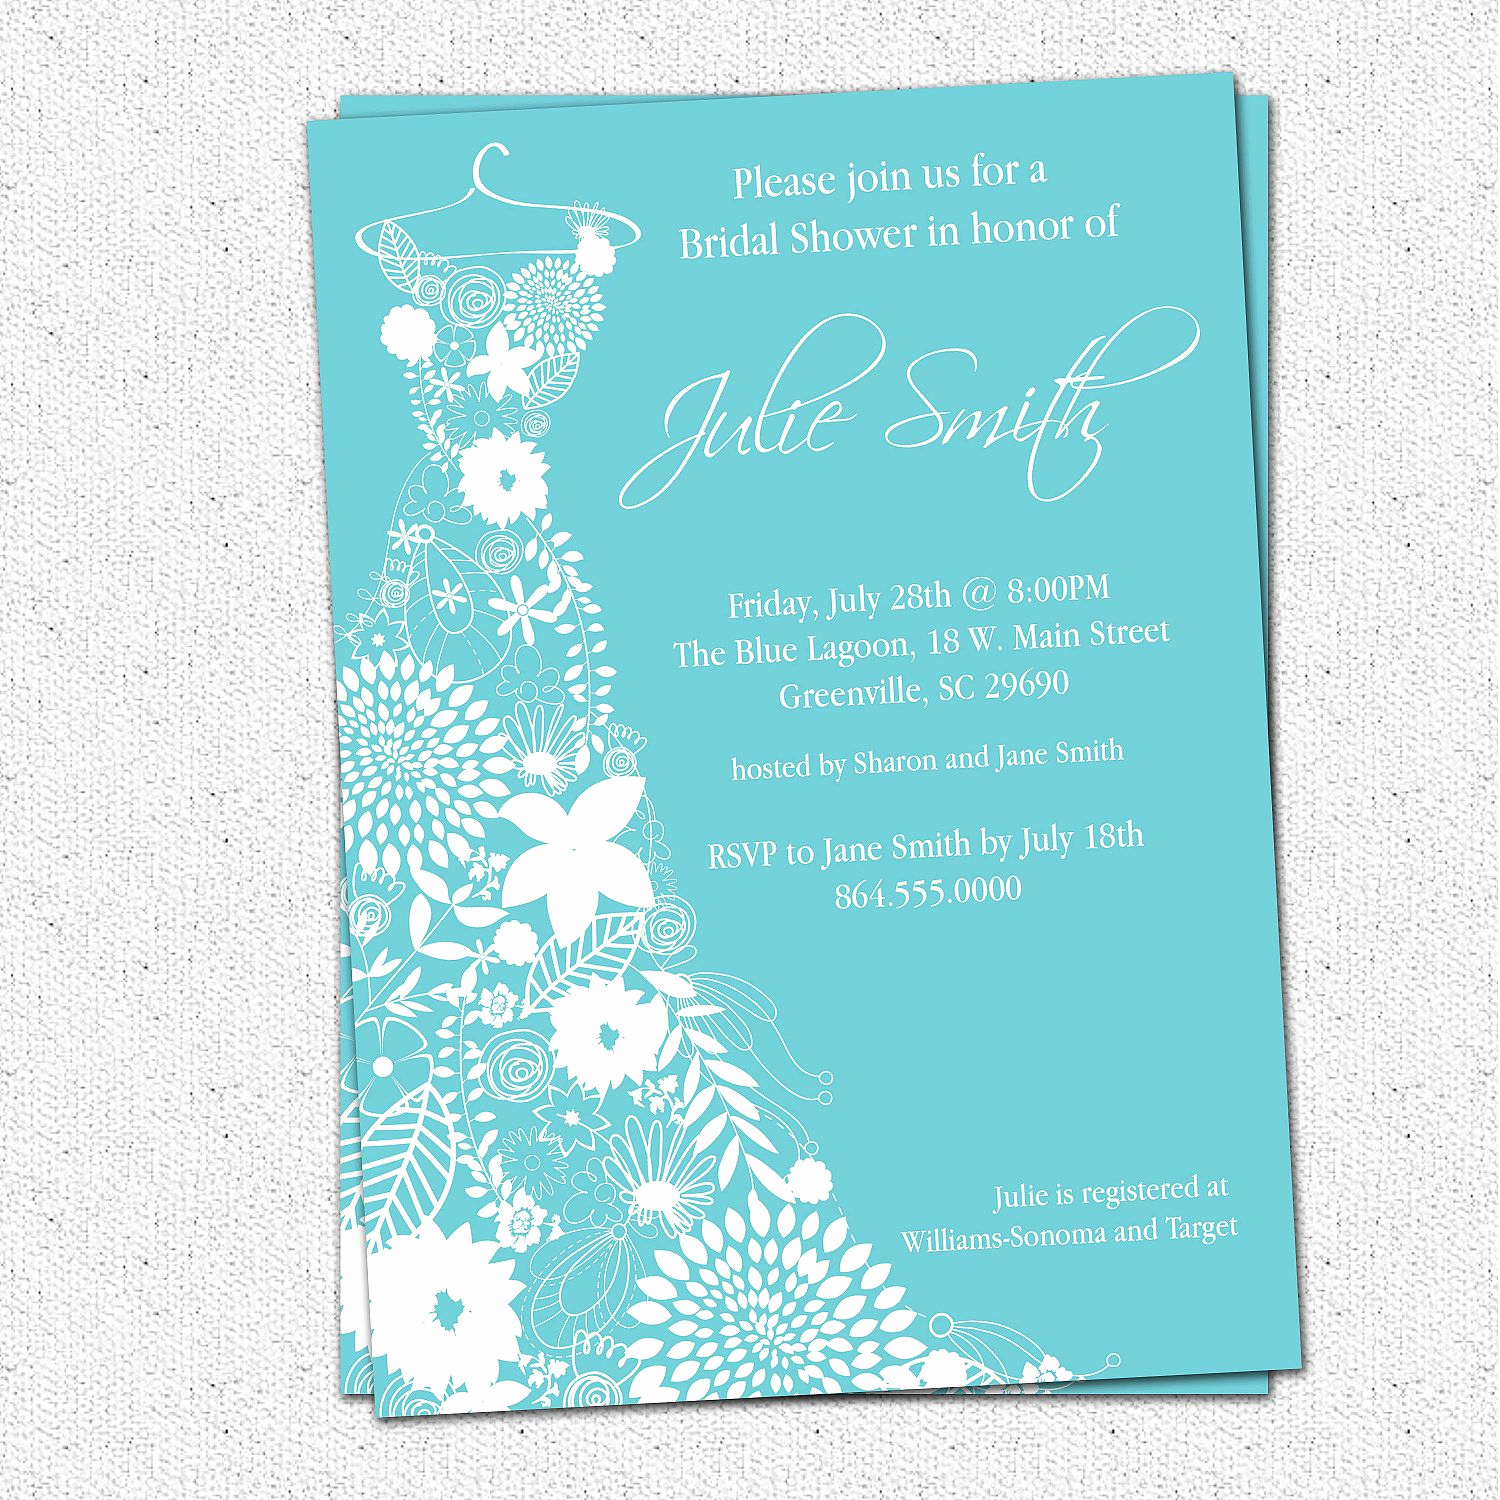 Wedding Shower Invitation Templates Inspirational Bridal Shower Invitation Bridal Shower Invitations